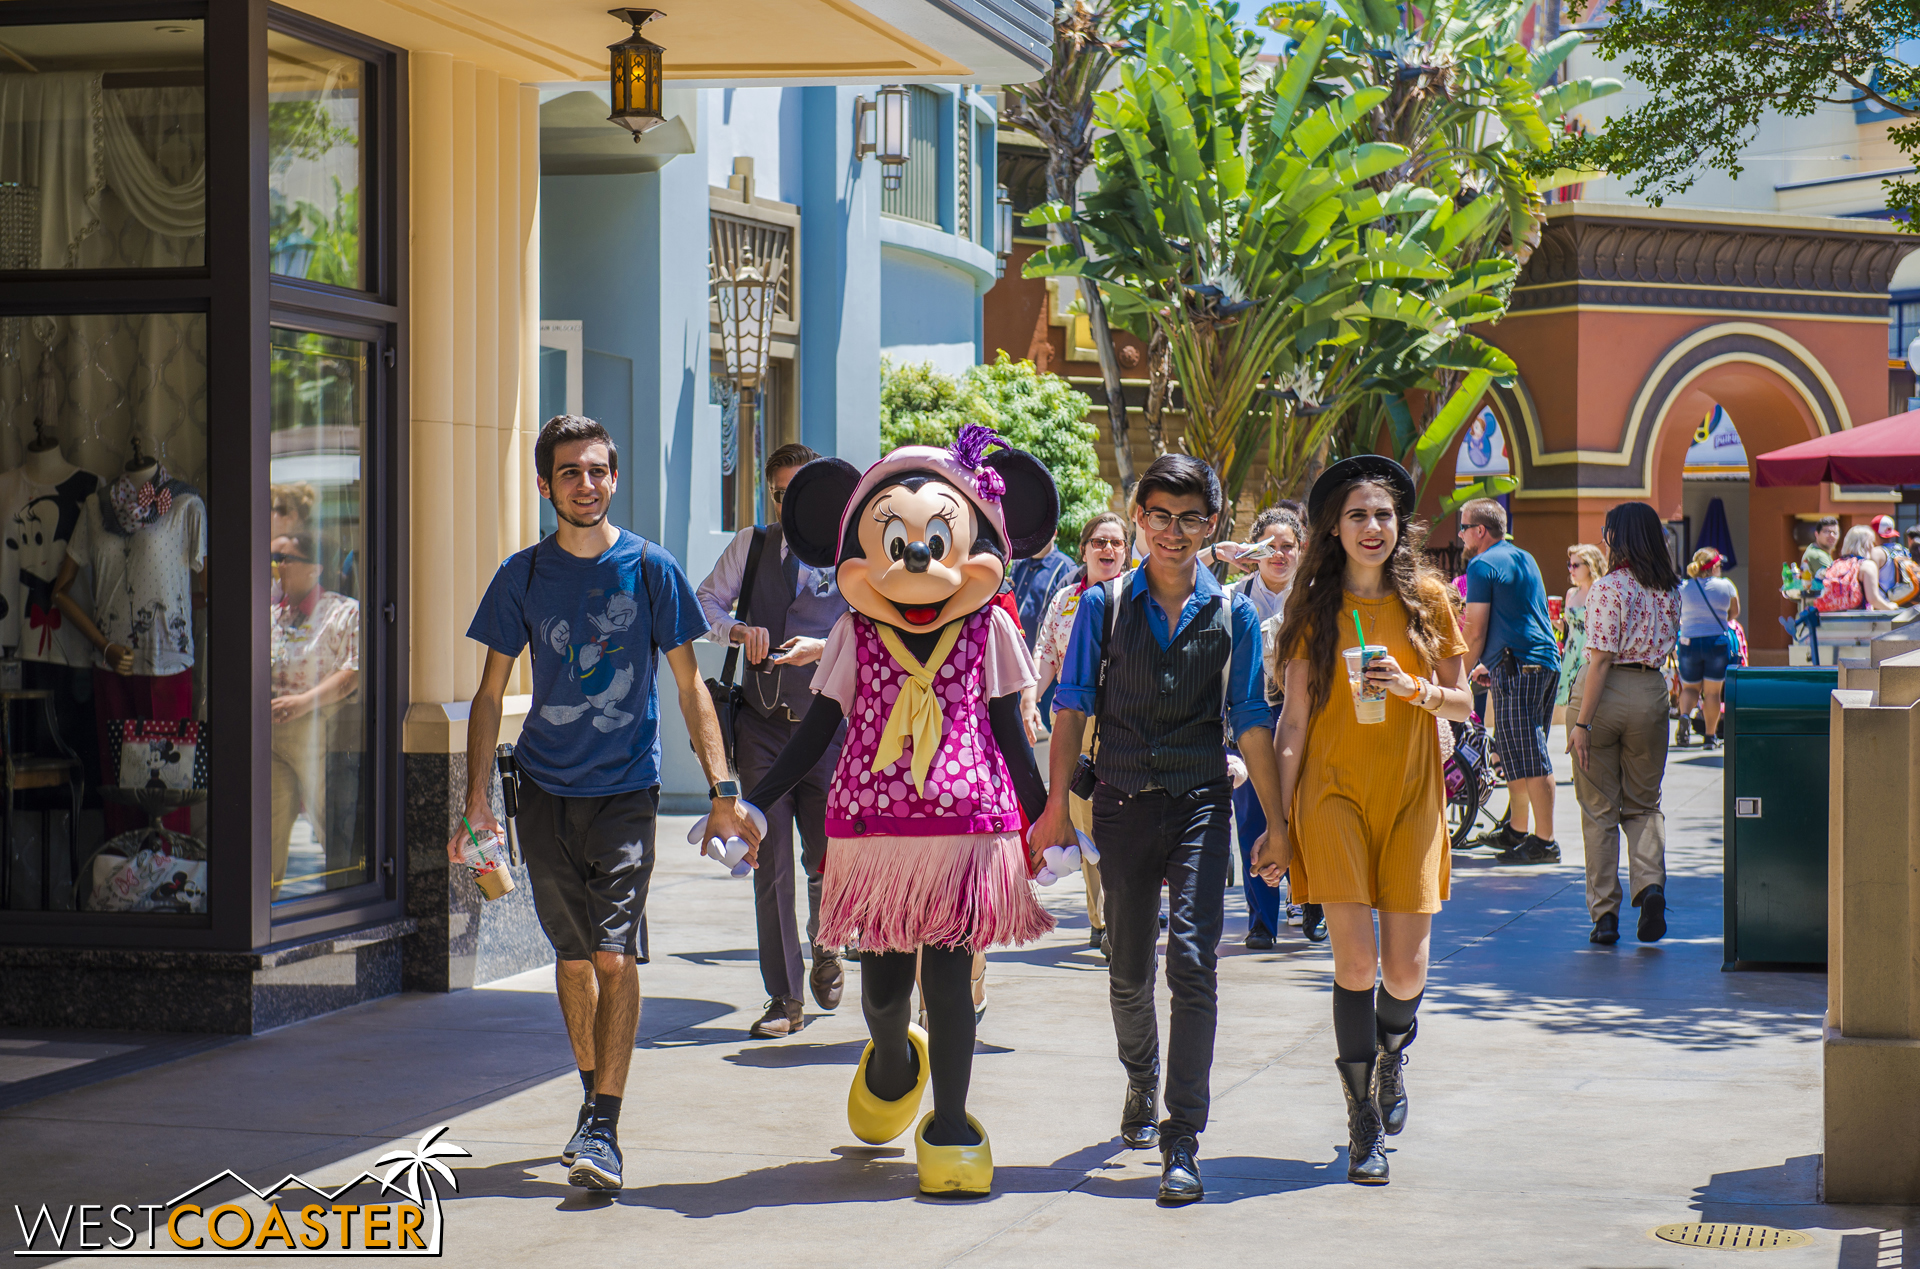 Minnie is always chic, especially on Buena Vista Street, but she had fans dressed sharply too.